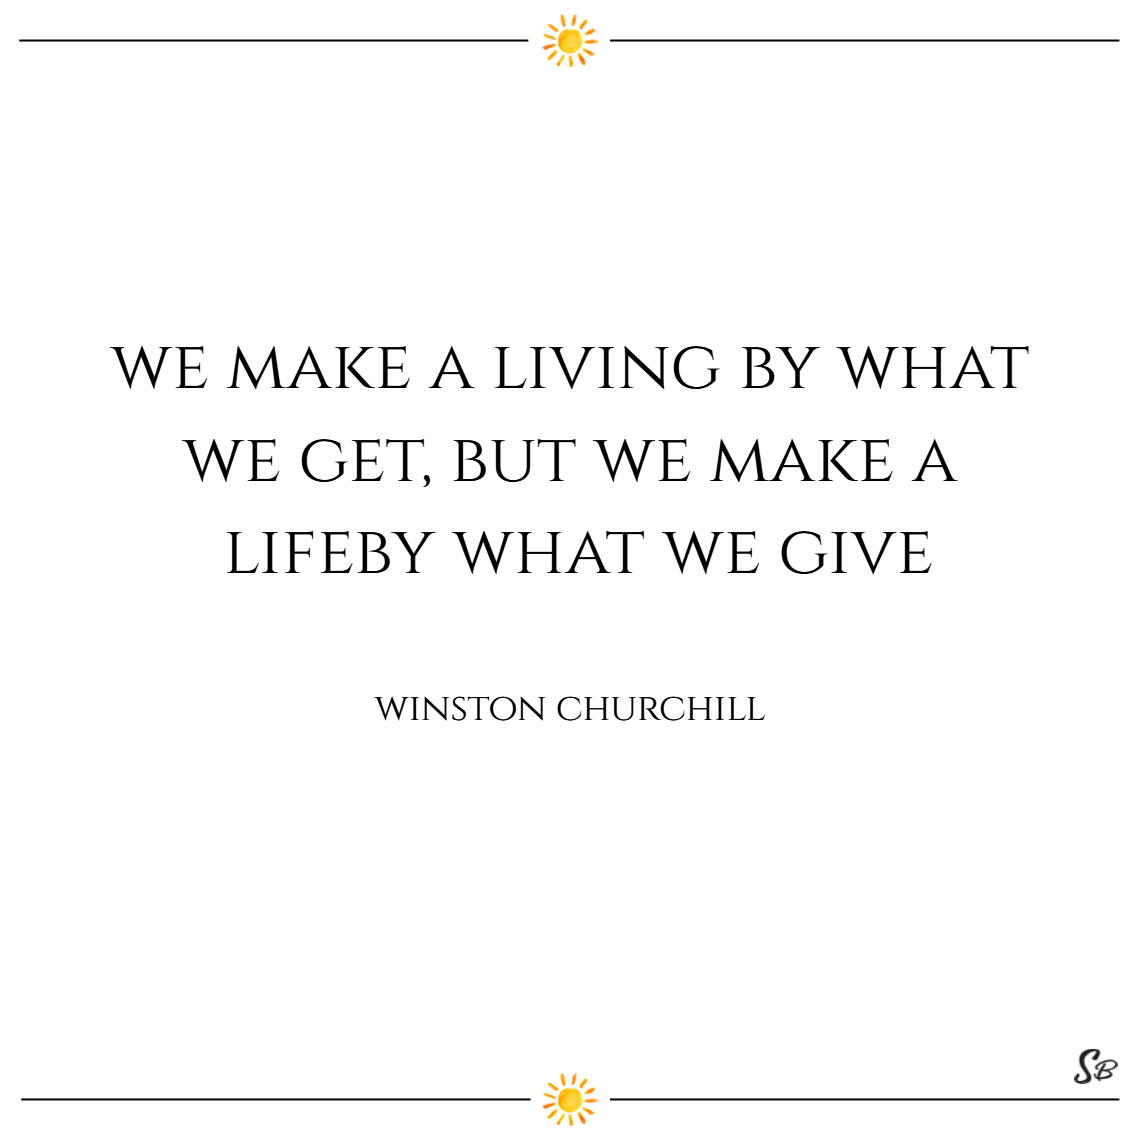 We make a living by what we get, but we make a life by what we give. – winston churchill